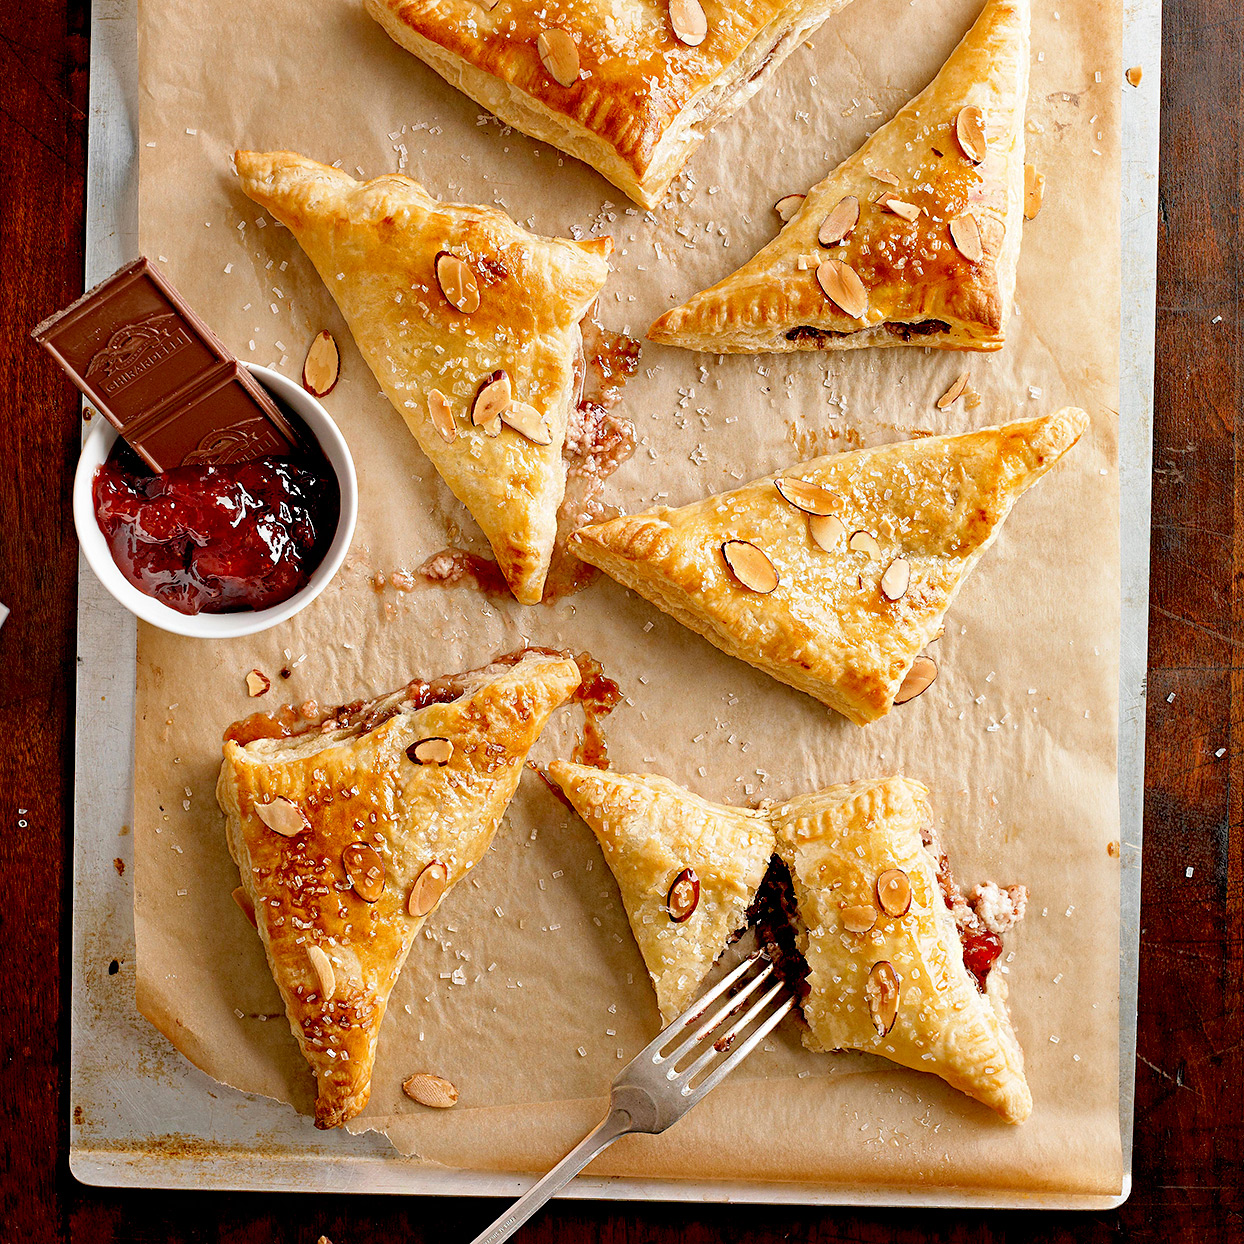 Strawberry-Chocolate Turnovers